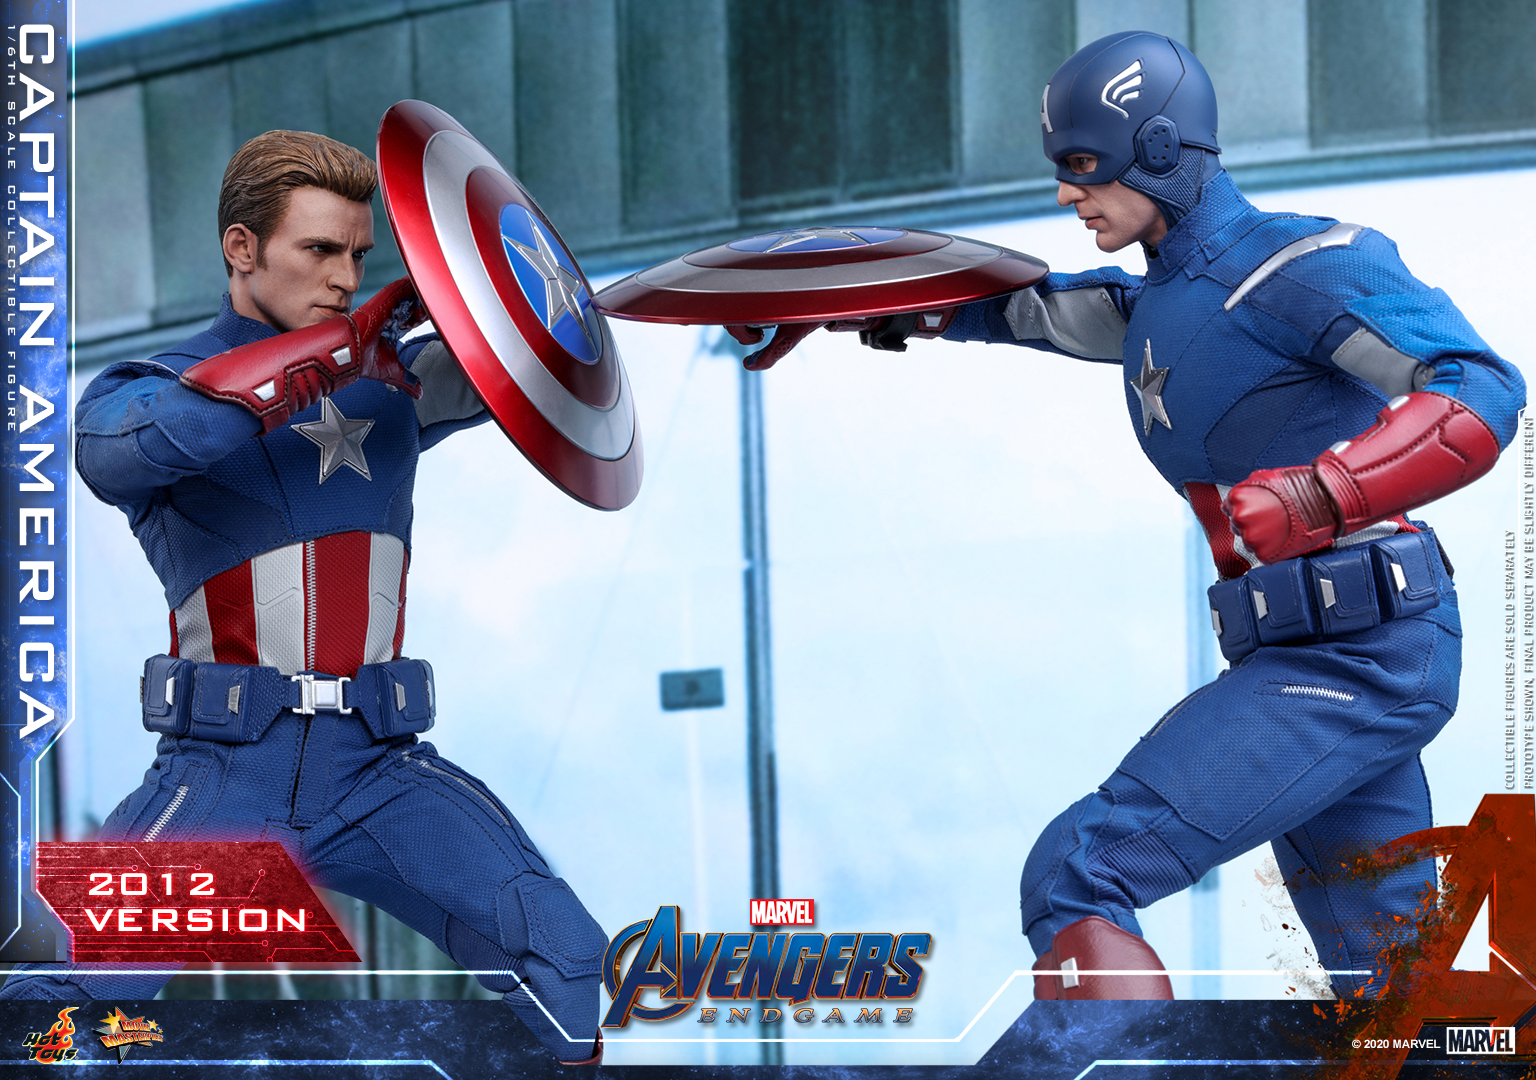 Hot Toys - A4 - Captain America (2012 Version) Collectible Figure_PR9